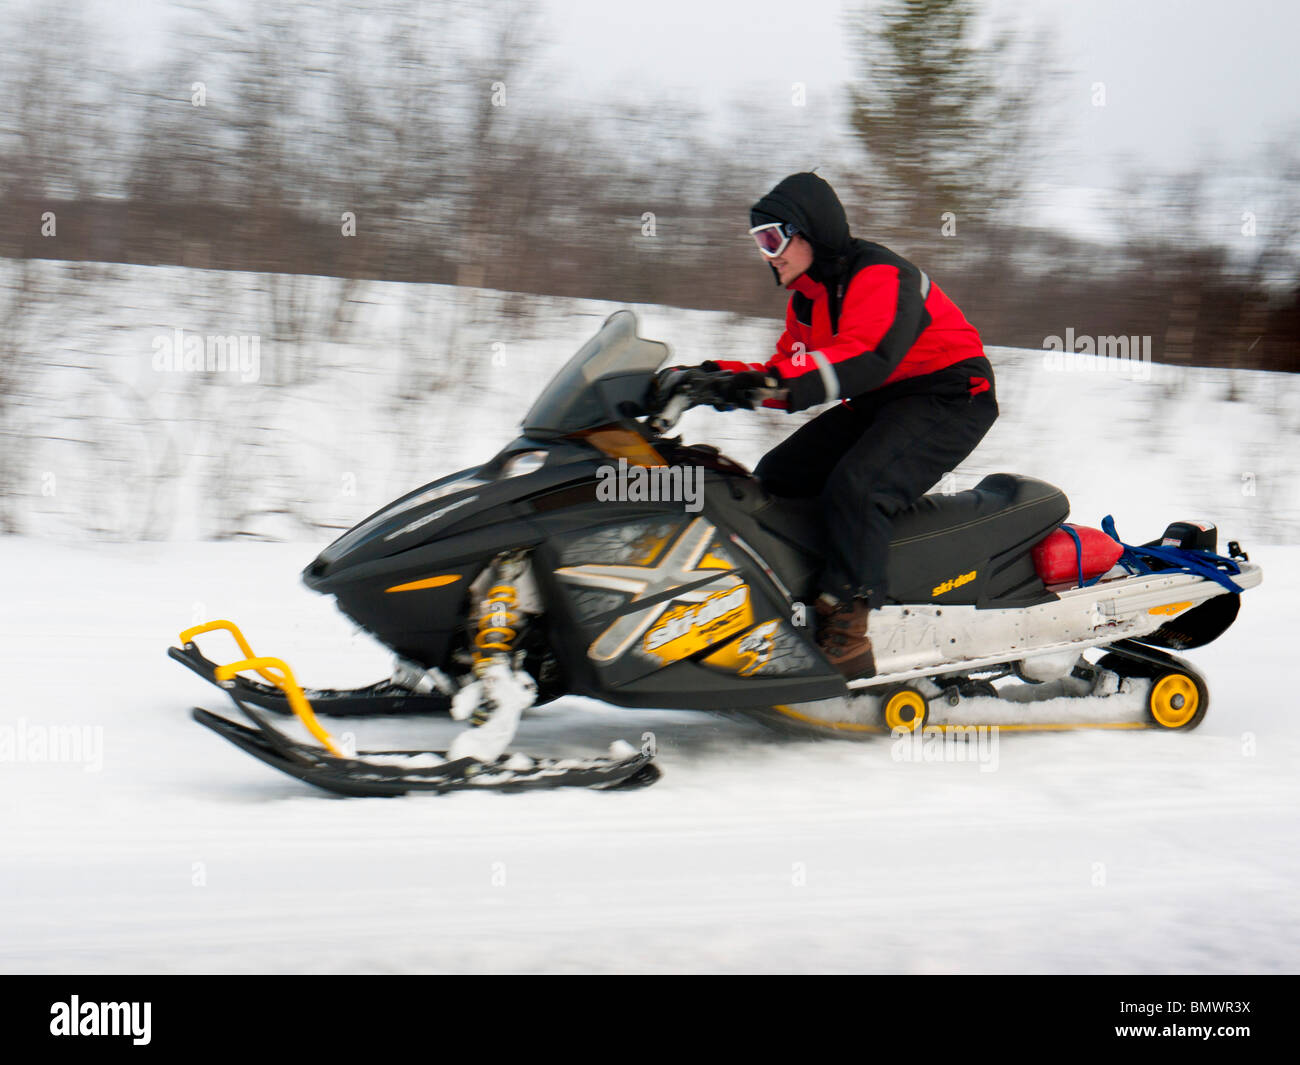 A young man drives a snow mobile through the snow at Kiruna, Lapland, Northern Sweden. - Stock Image